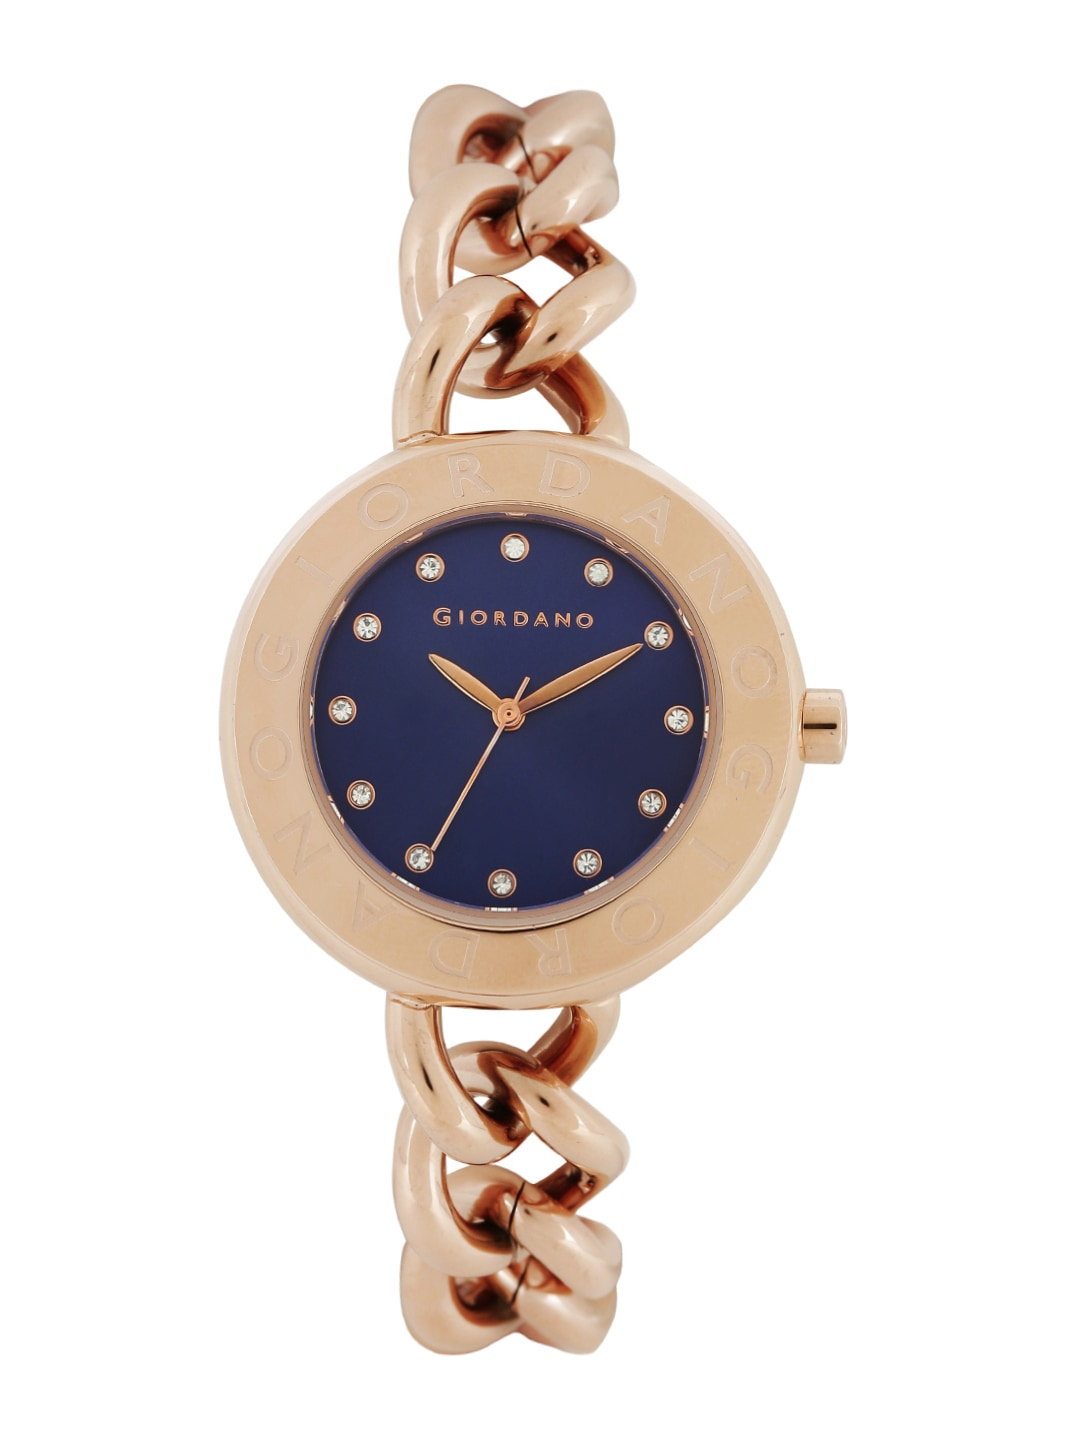 Giordano Women Navy Dial Watch 2755-77 image